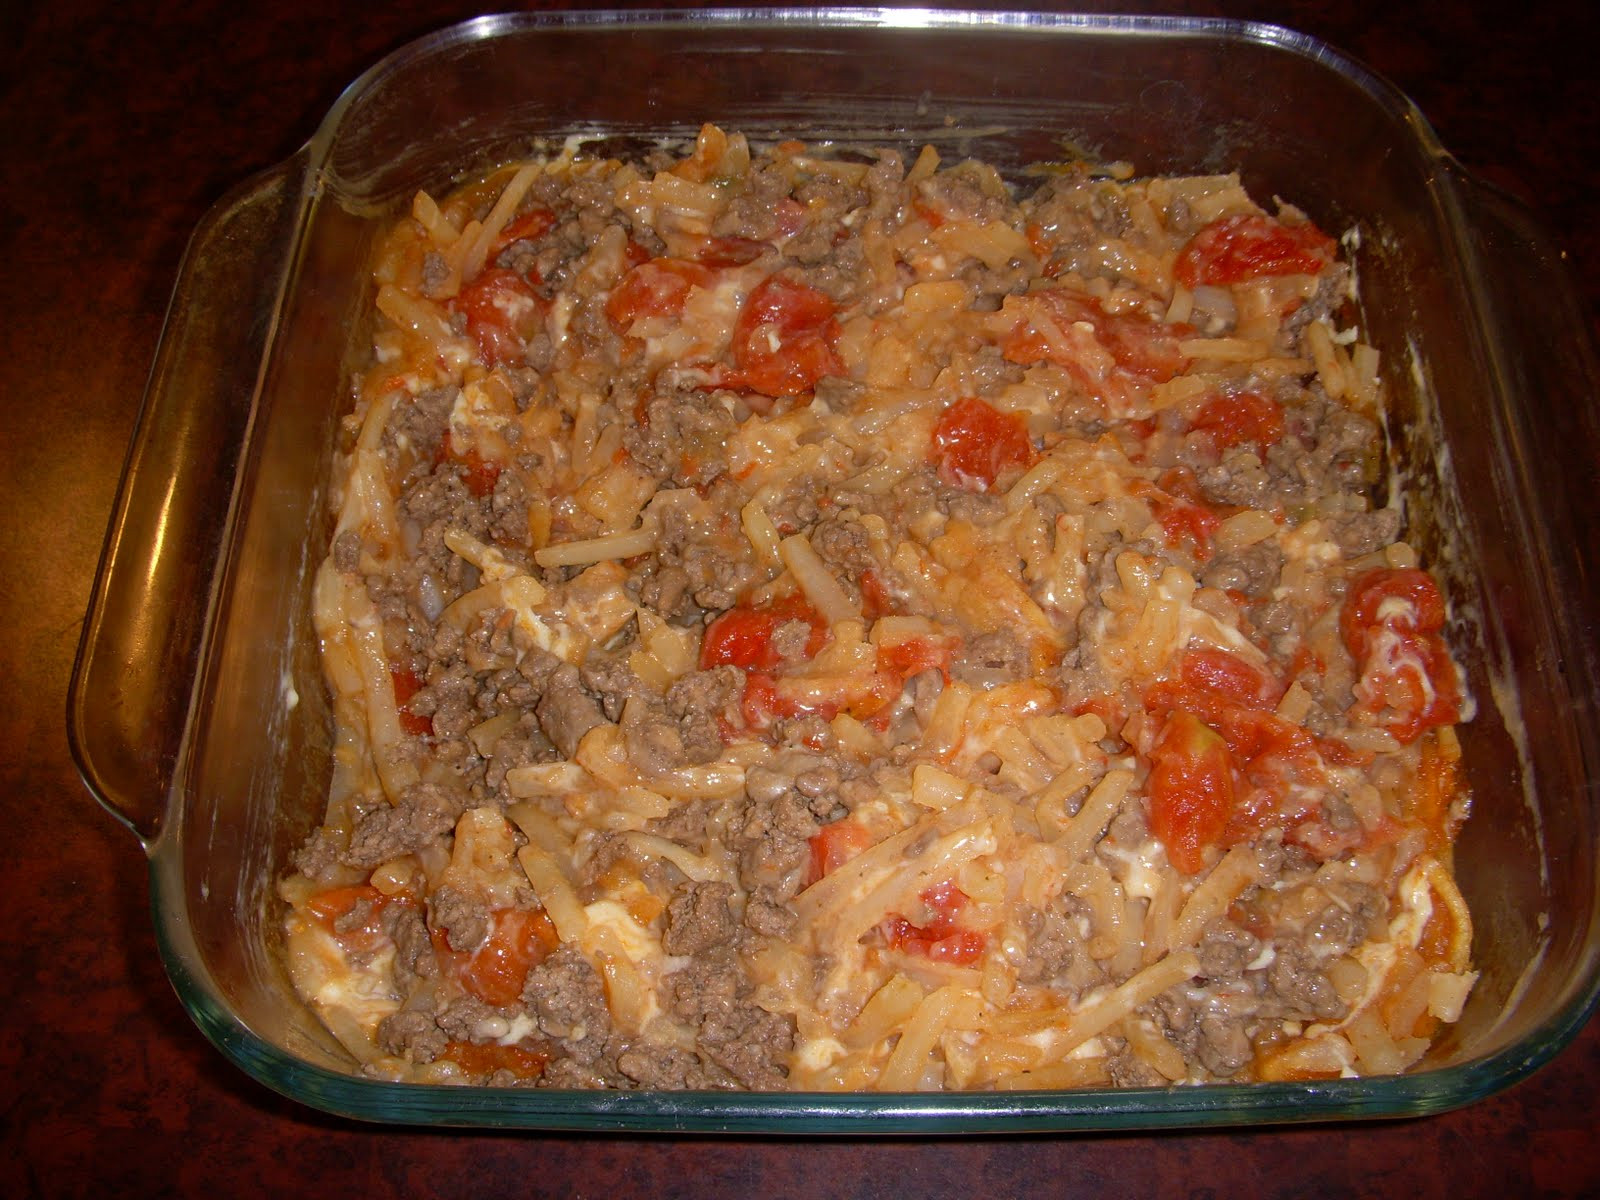 Ground Beef Hash Brown Casserole  My Gluten Free & Dairy Free Kitchen HASH BROWN & GROUND